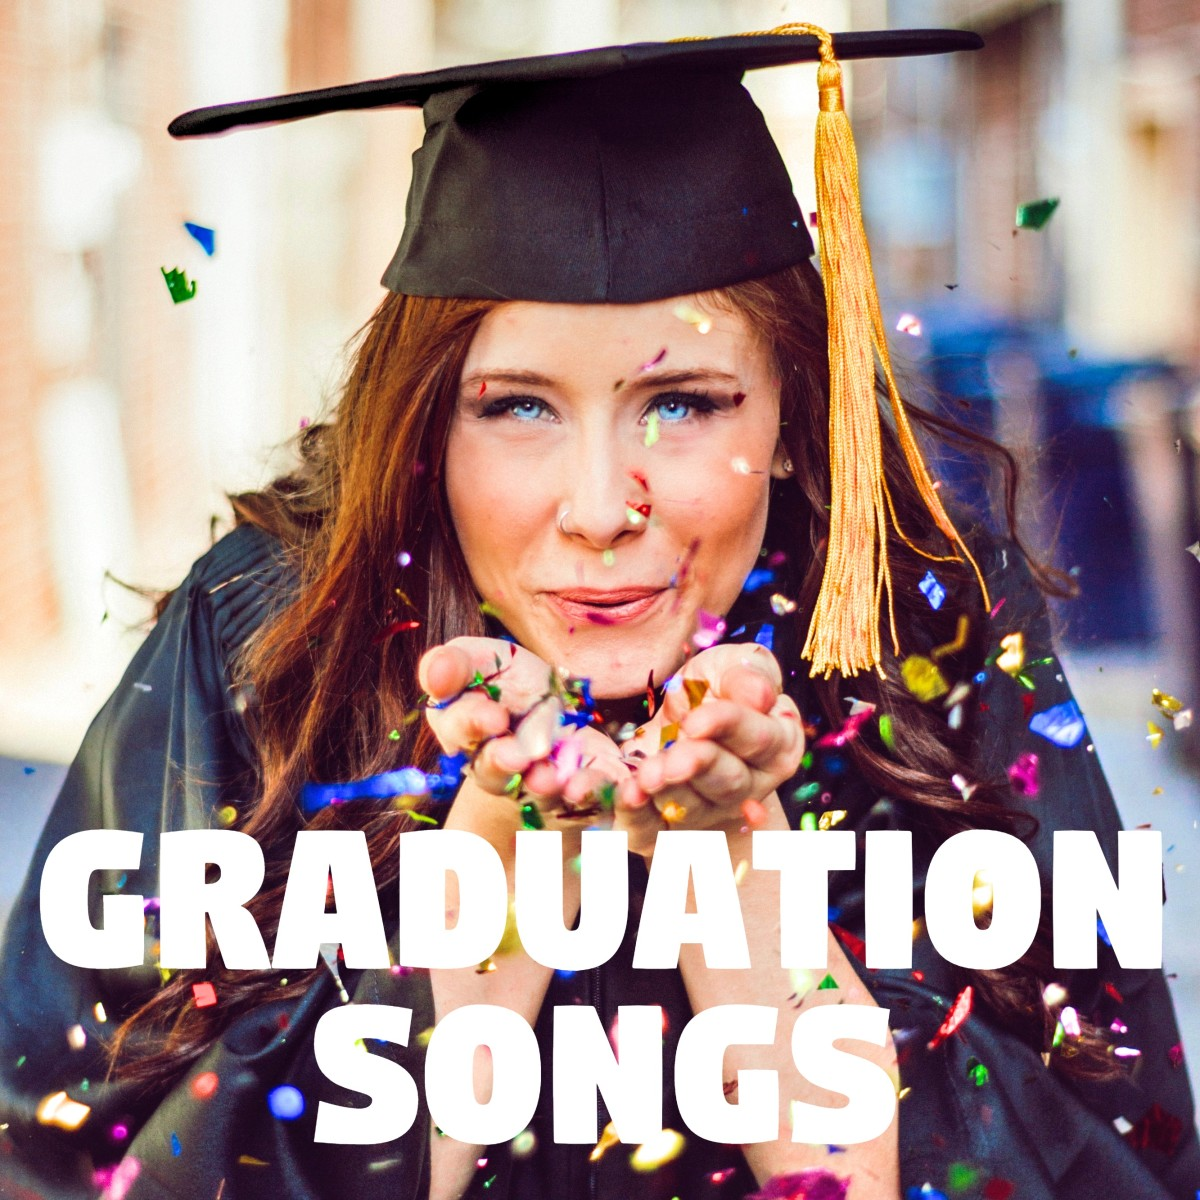 Graduate, you've worked hard for that diploma, so celebrate commencement with a graduation playlist of pop, rock, and country songs that honor your achievements, your friendships, and the excitement of your future!